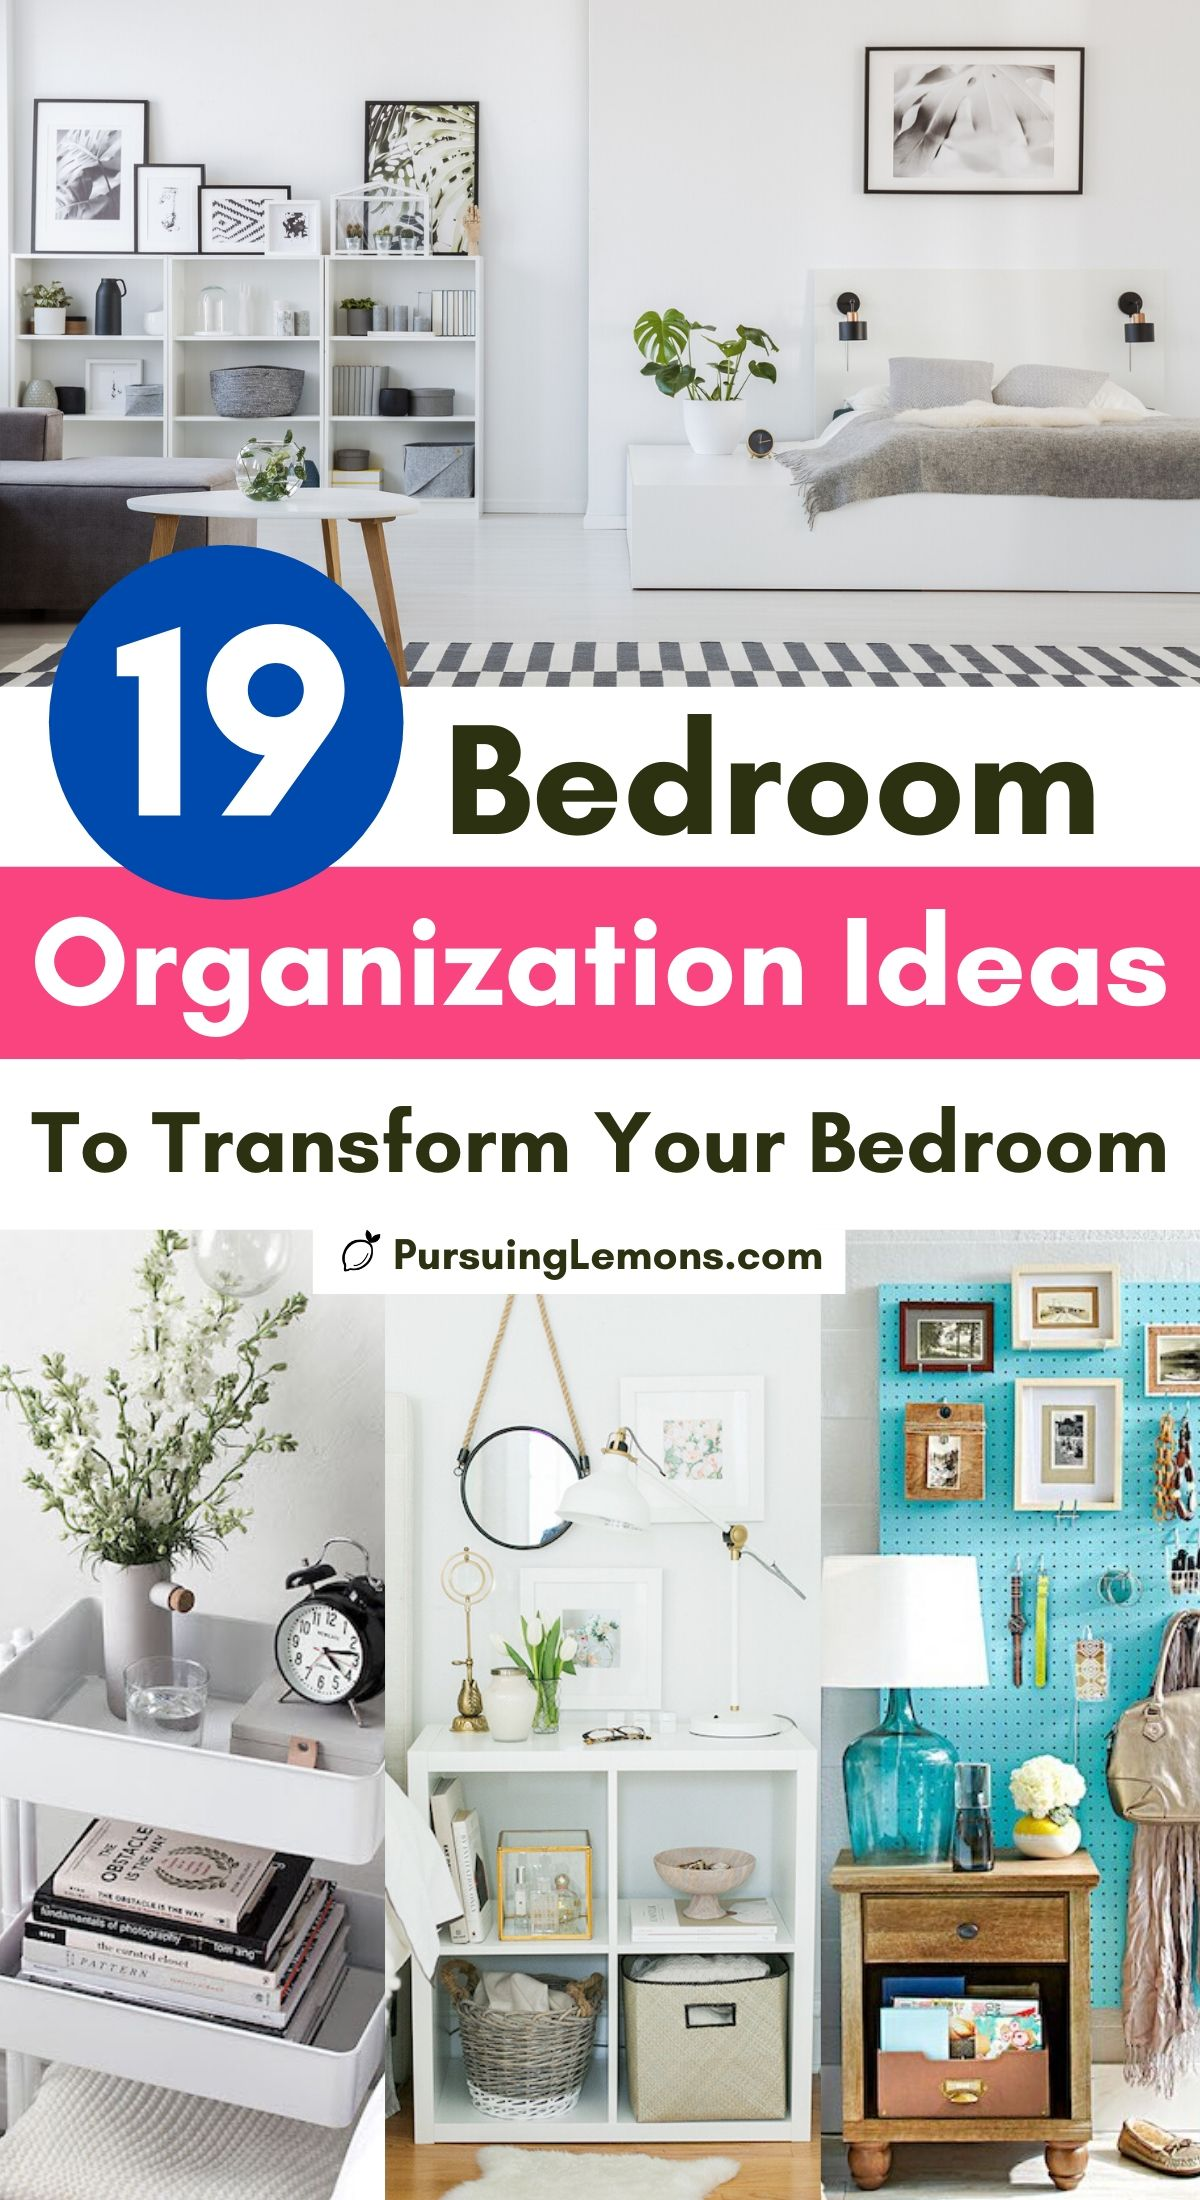 19 Bedroom Organization Ideas That Will Transform Your Bedroom | Organize bedroom with these bedroom organization tips. You will find bedroom storage and organization ideas in this list post. These bedroom organization tricks will keep even the smallest bedroom neat, tidy and organized! #bedroomorganization #organizingbedroom #bedroomhacks